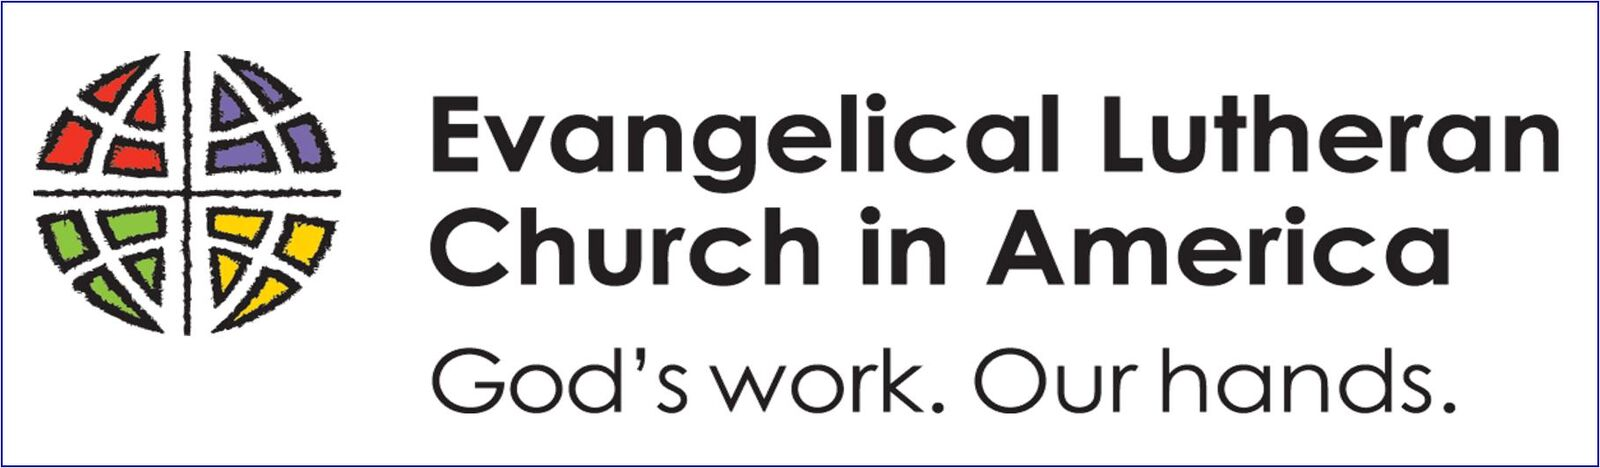 Evangelical Lutheran Church in America Clip Art.